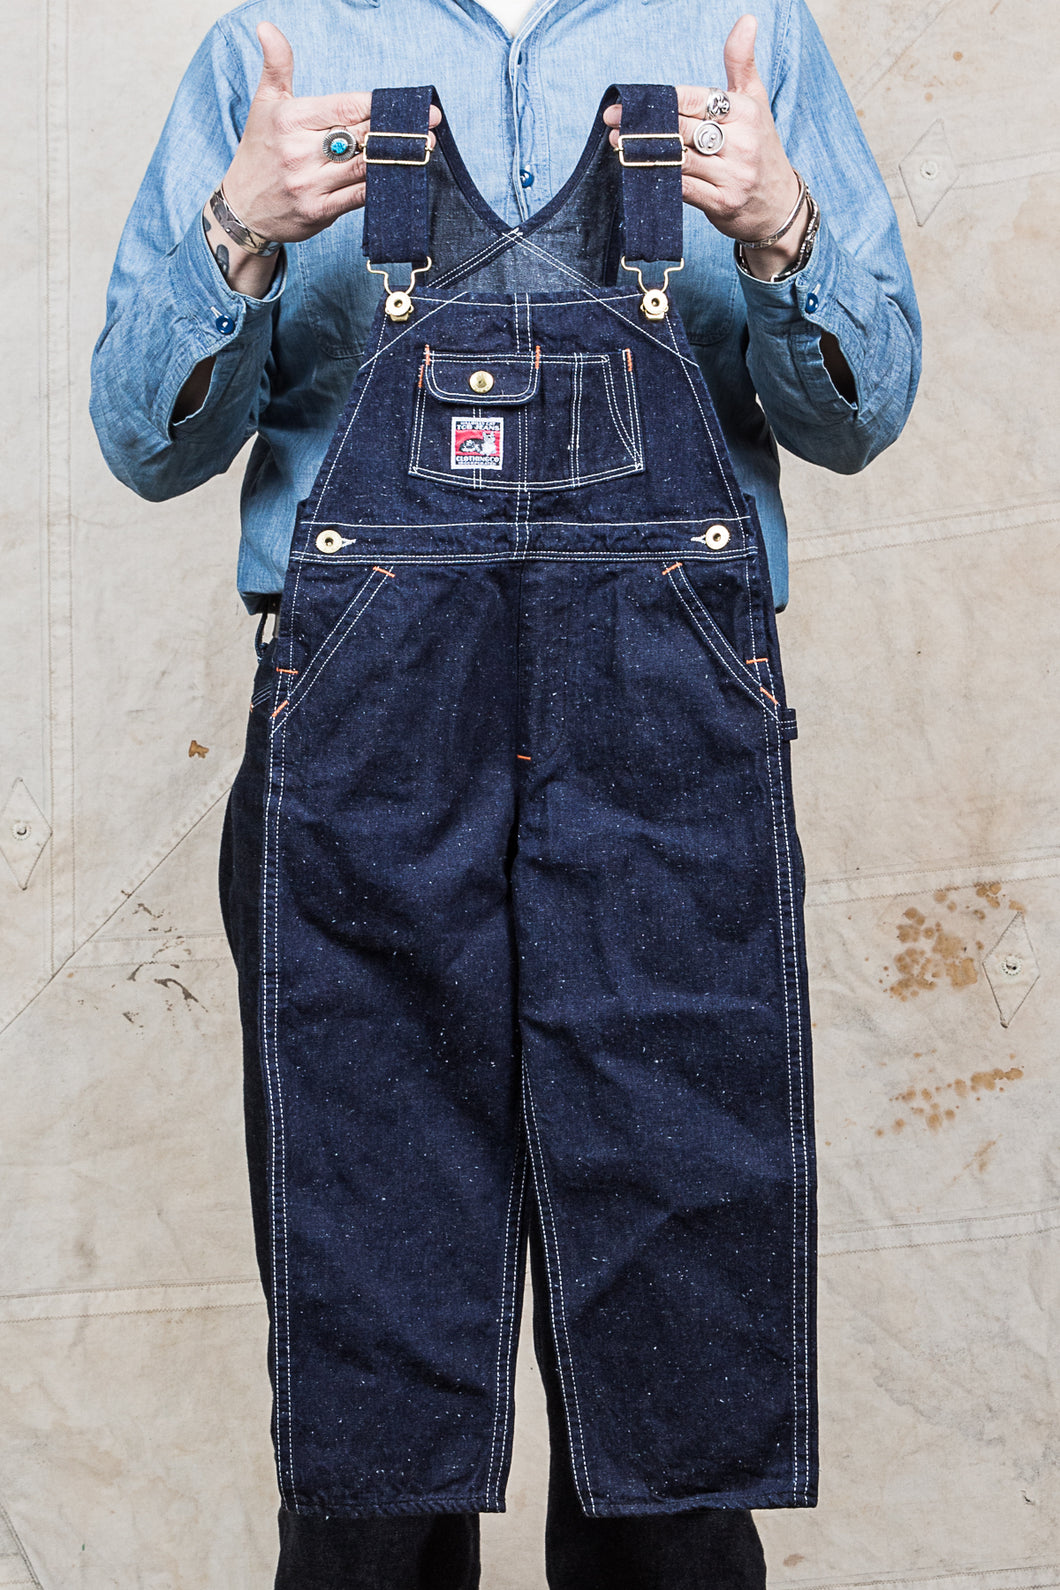 TCB Jeans Kids Wrecking Crew Denim Overall